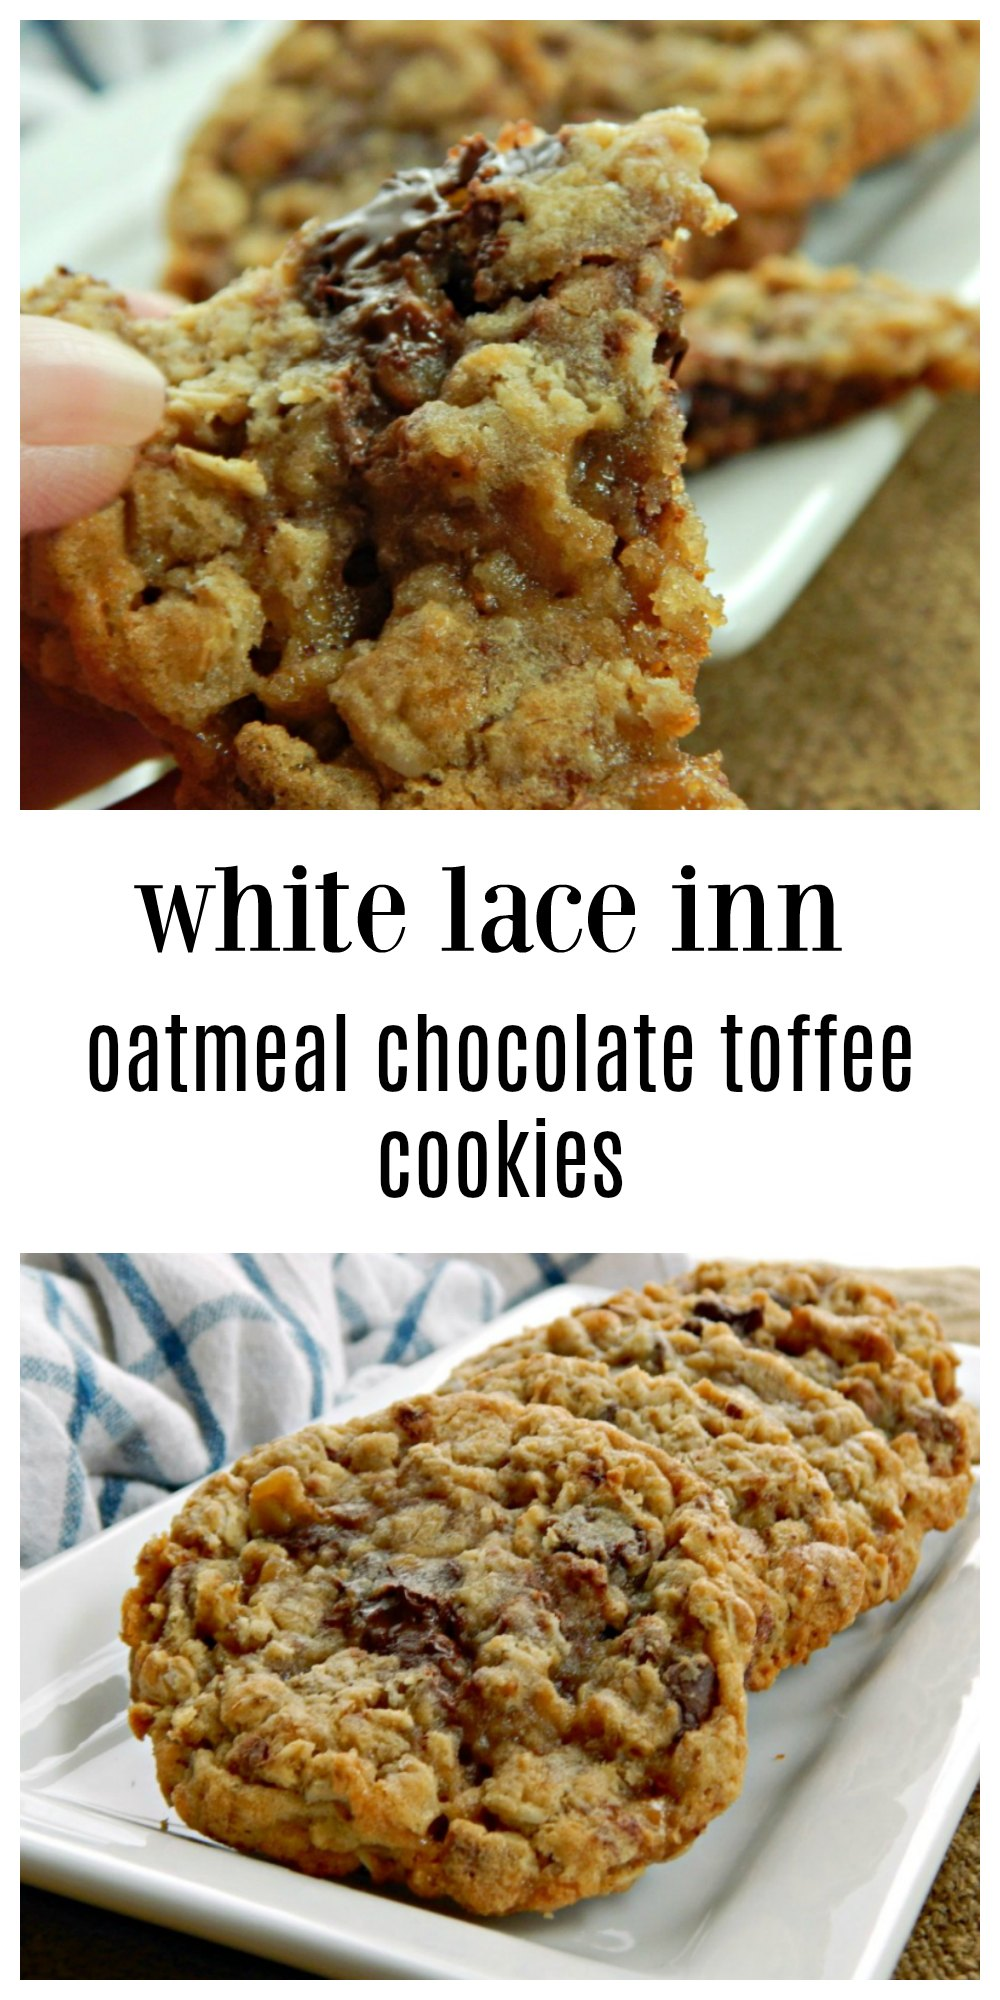 White Lace Inn Oatmeal Chocolate Toffee Cookies